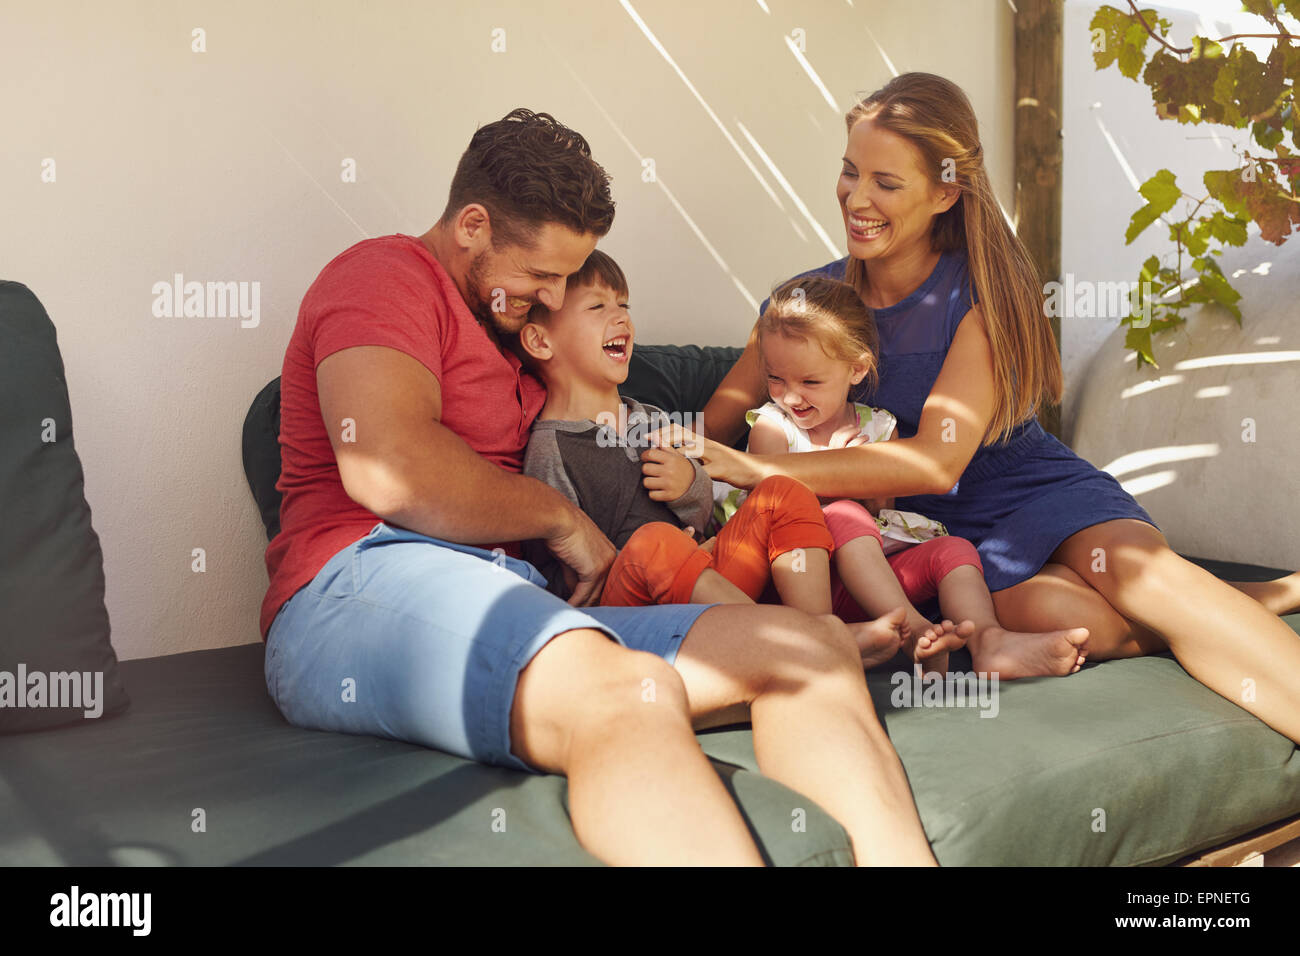 Shot of happy family of four in their backyard having fun, sitting on couch playing. Parents playing with kids laughing - Stock Image